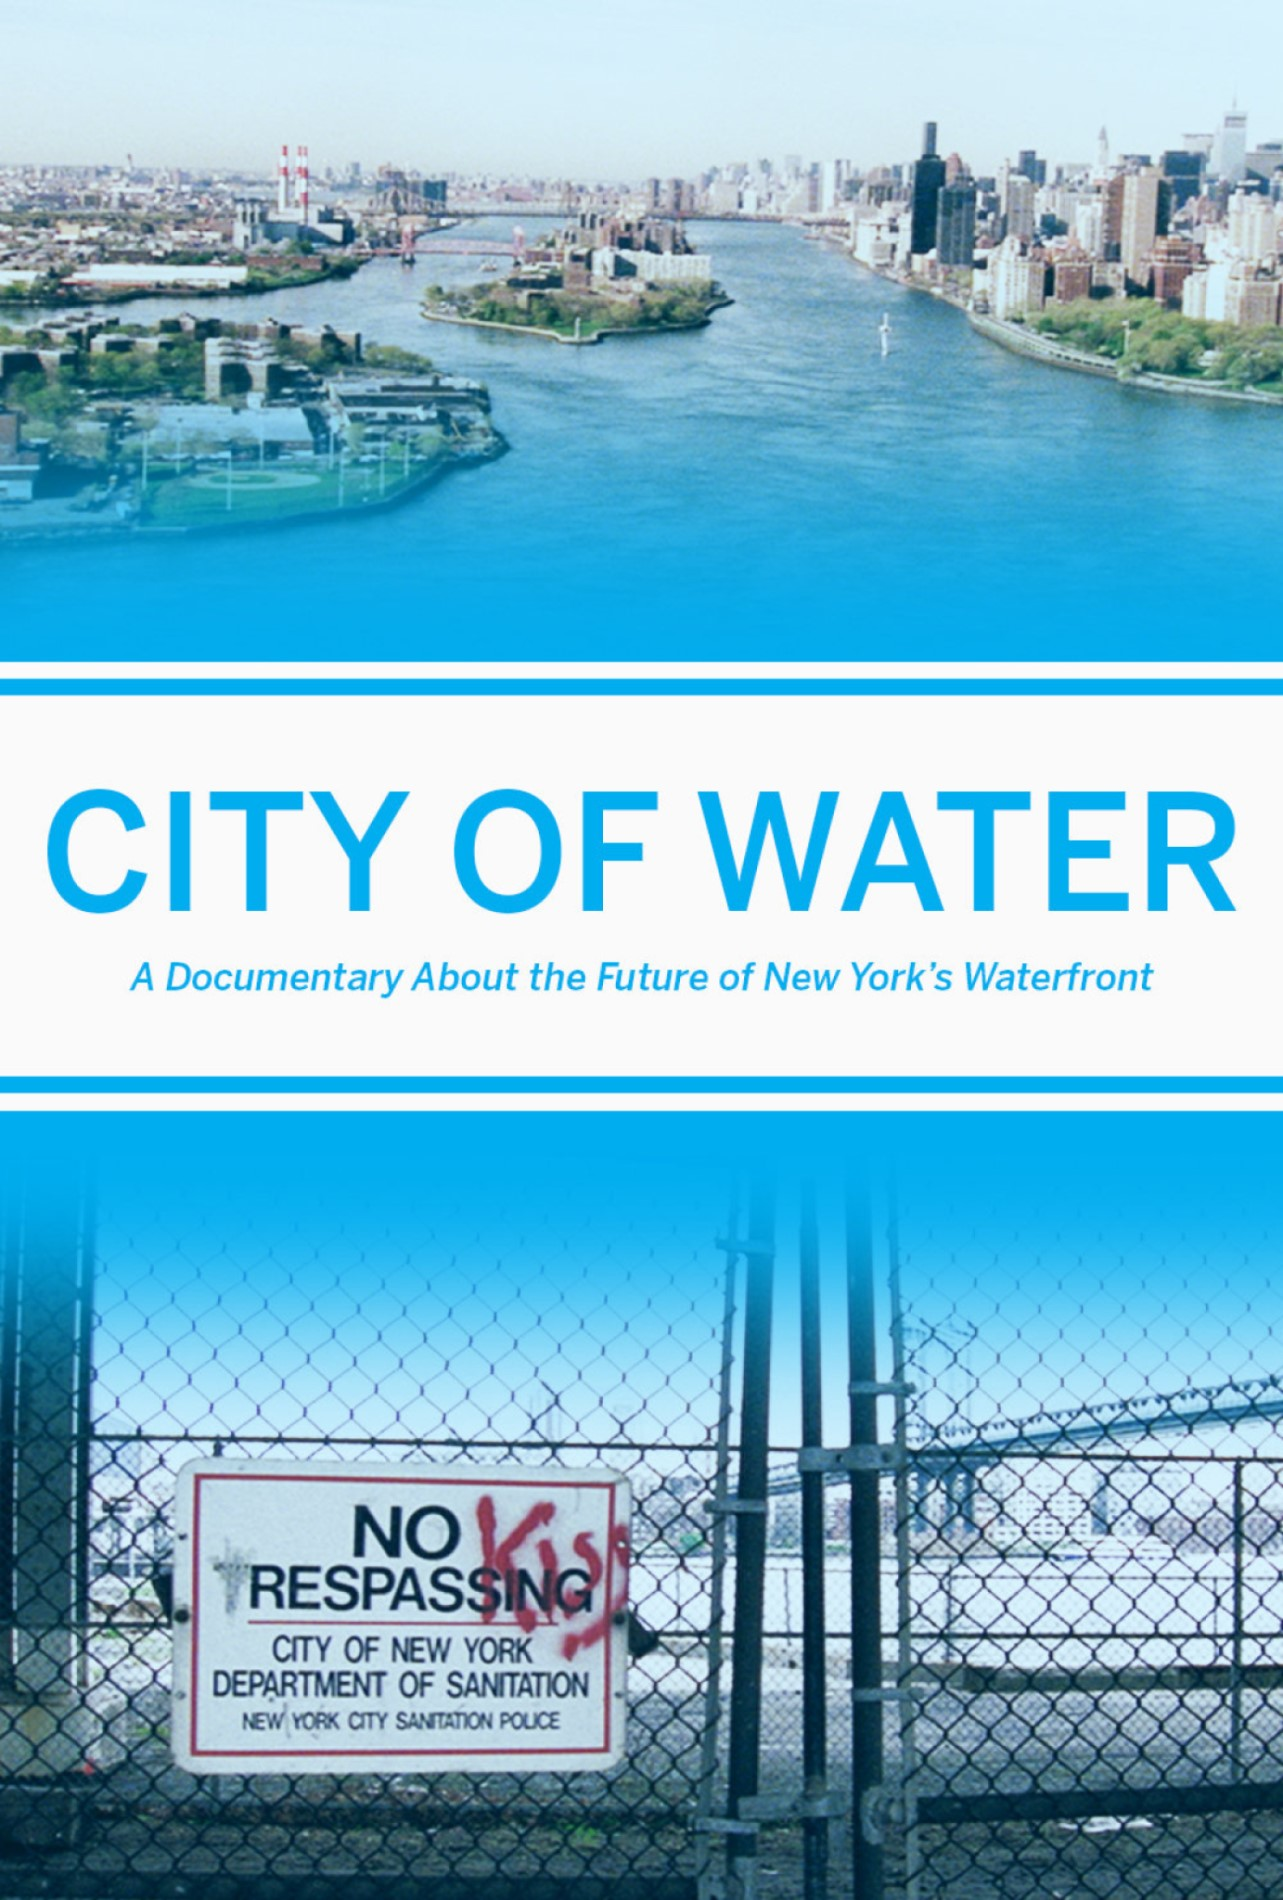 city of water documentary.jpg